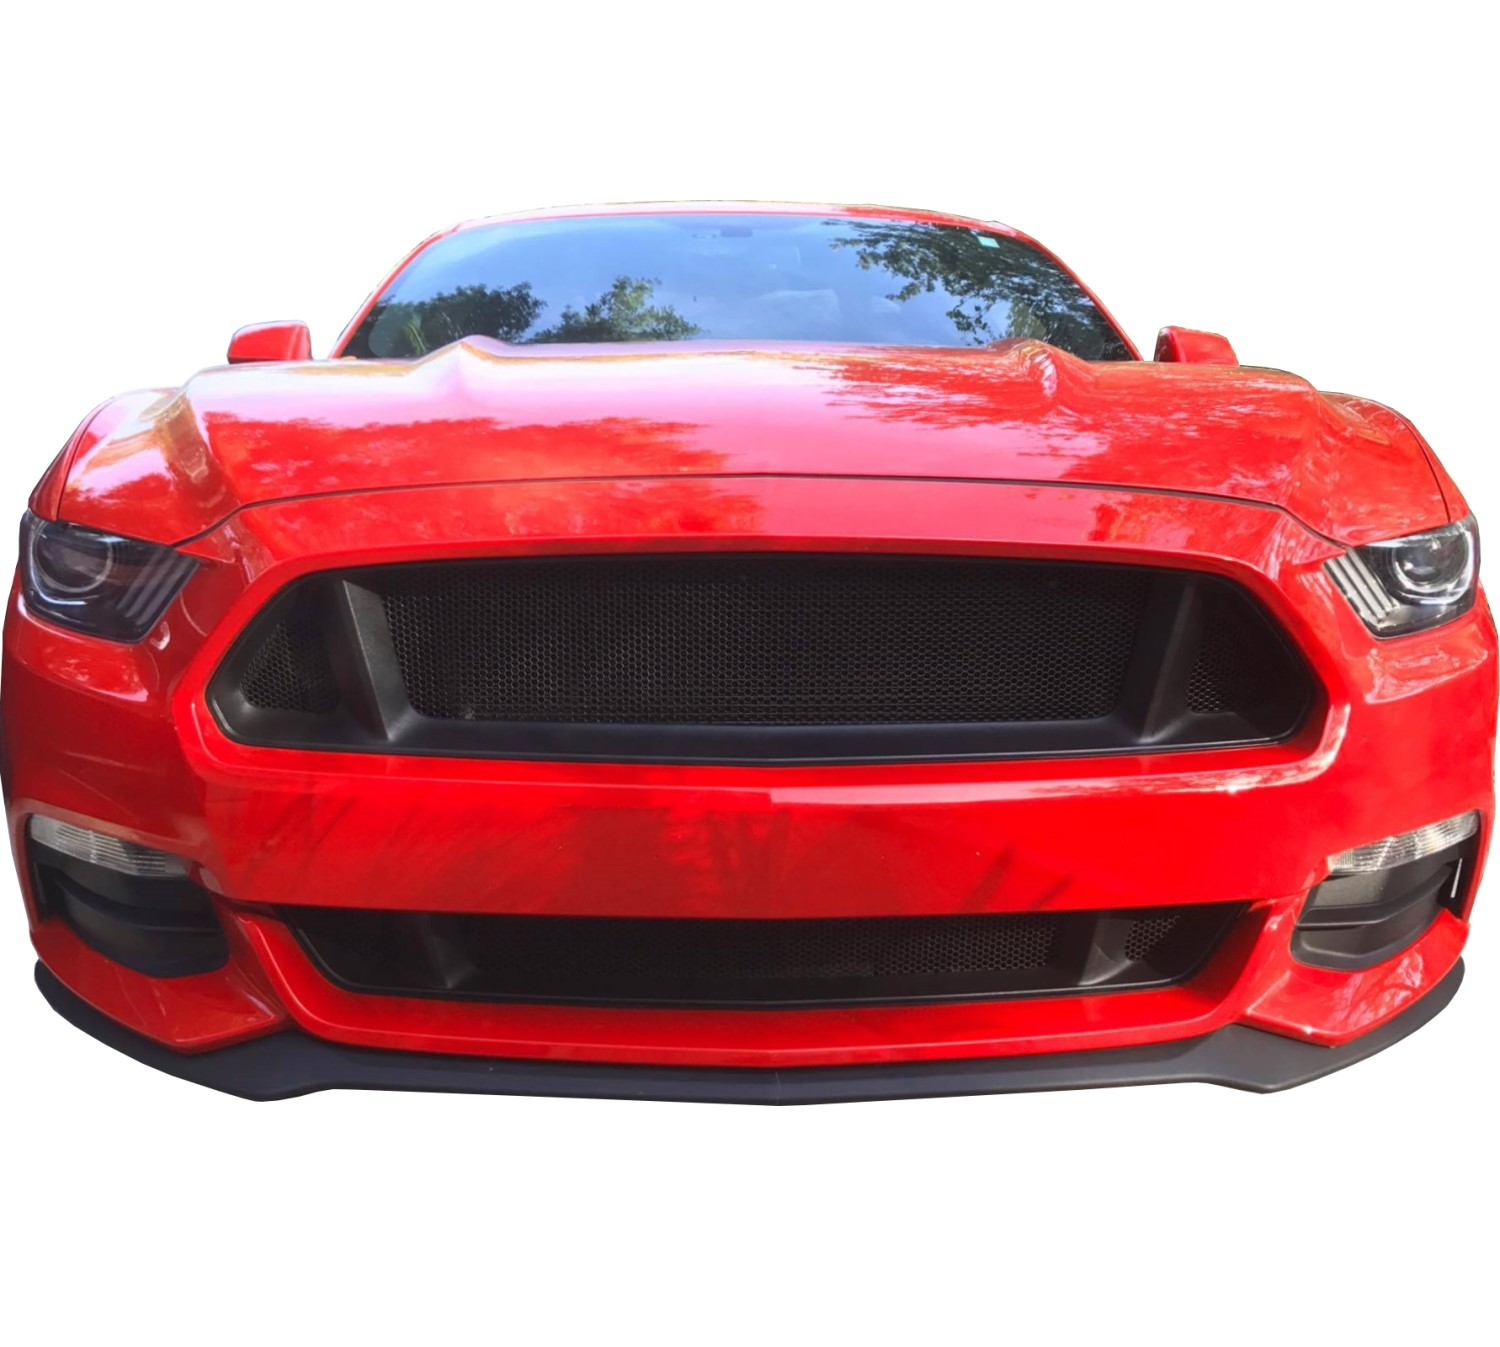 eaf3b8b796ec Details about CCG FLAT BLACK GRILL GRILLE DELETE MESH INSERT KIT FOR  2015-17 FORD MUSTANG GT